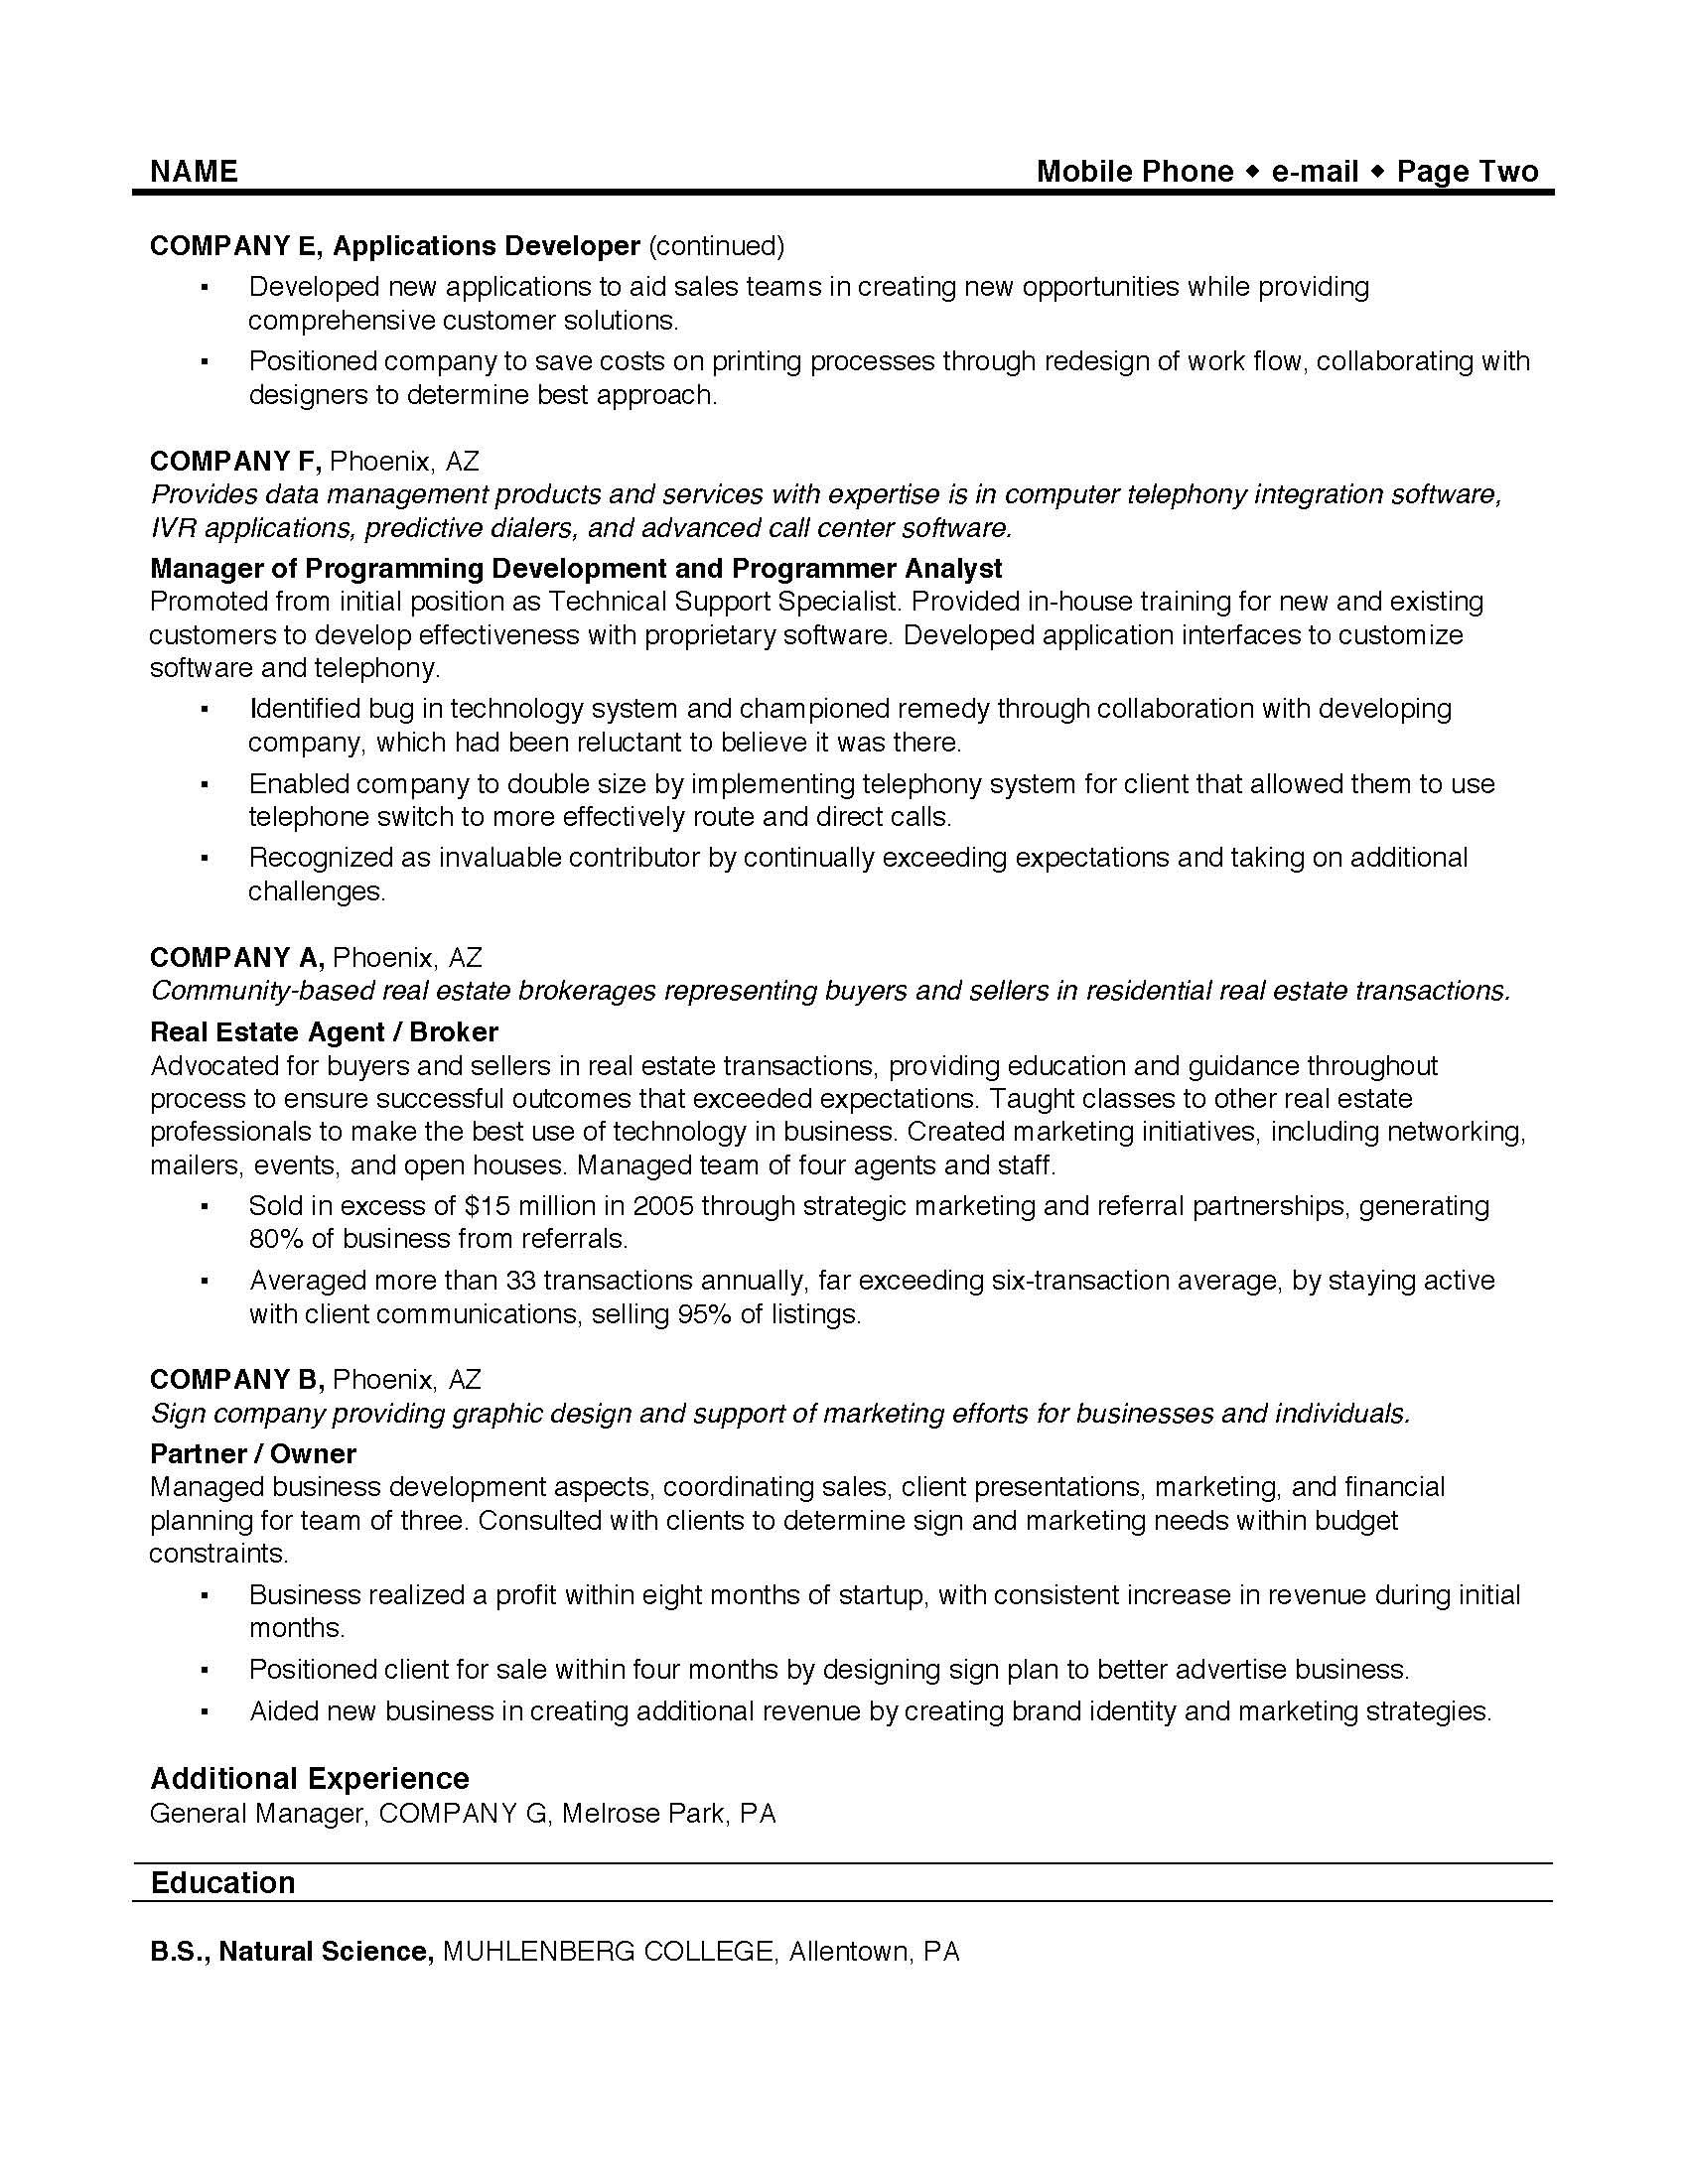 Resume Examples College Student Pics Photos Sample College Student Resume Examples Samples Resumes